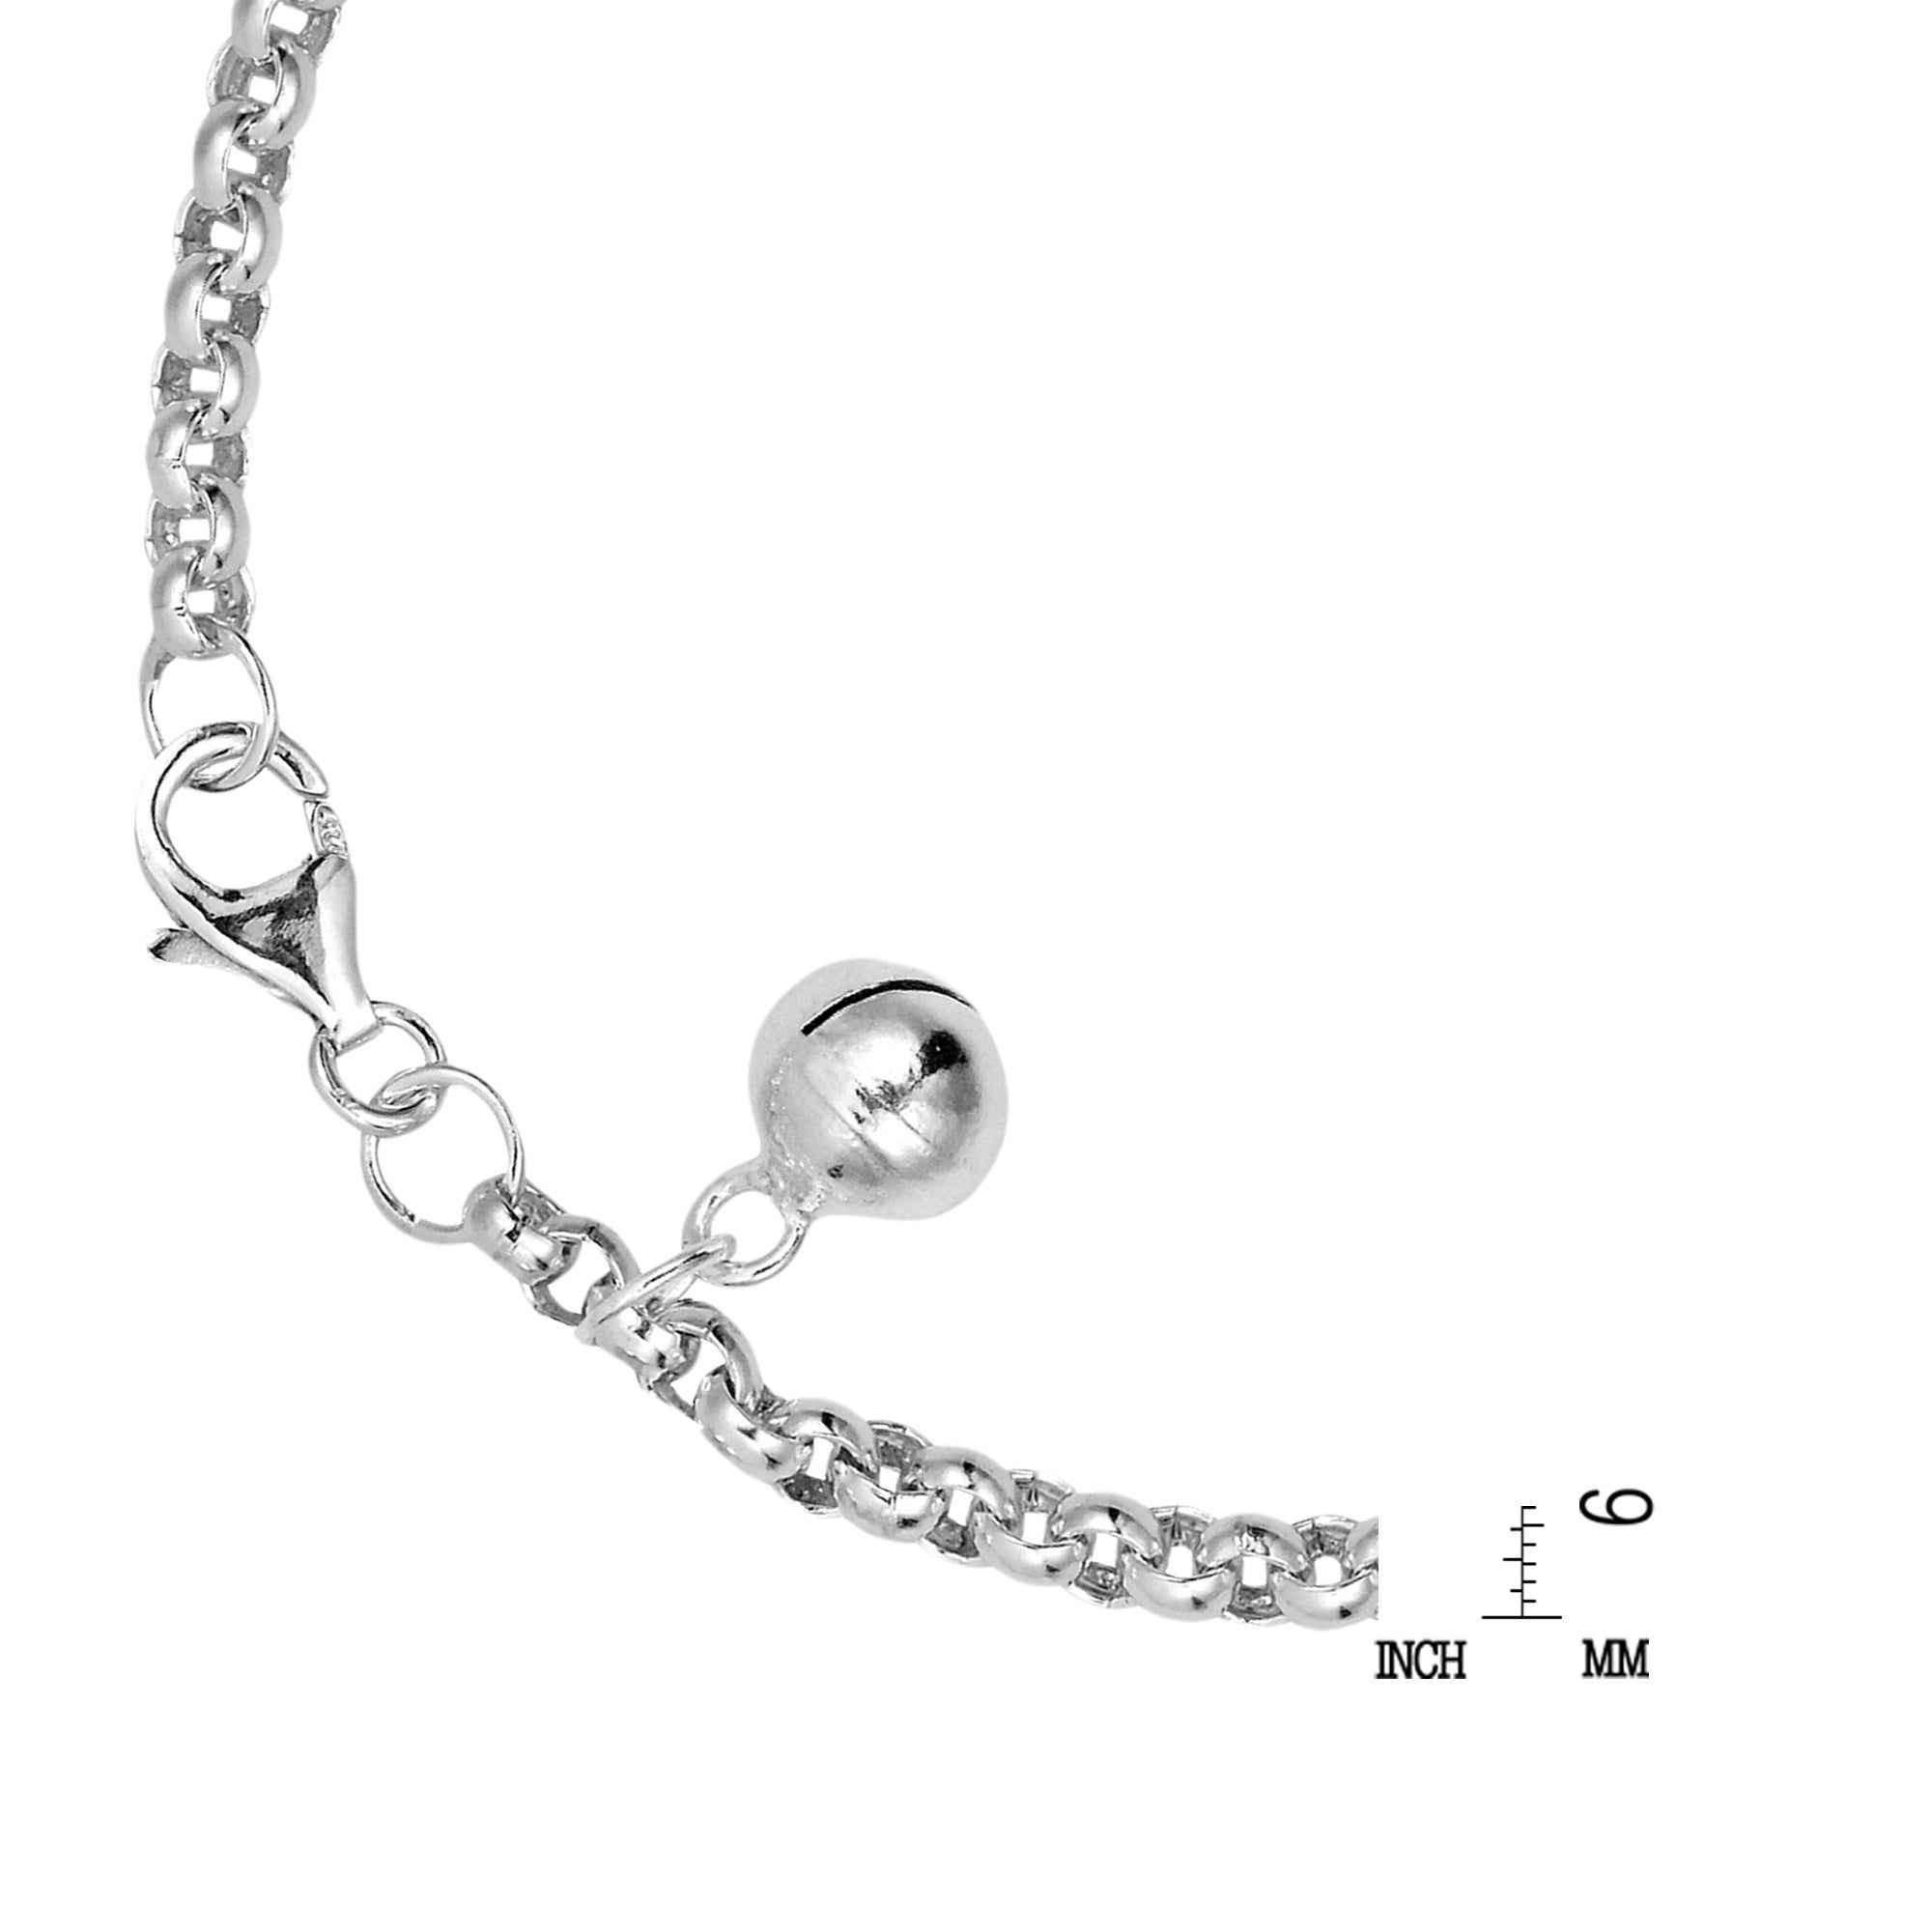 0.24 Inches Wide Sterling Silver Childrens ID Bracelet 6 Inches